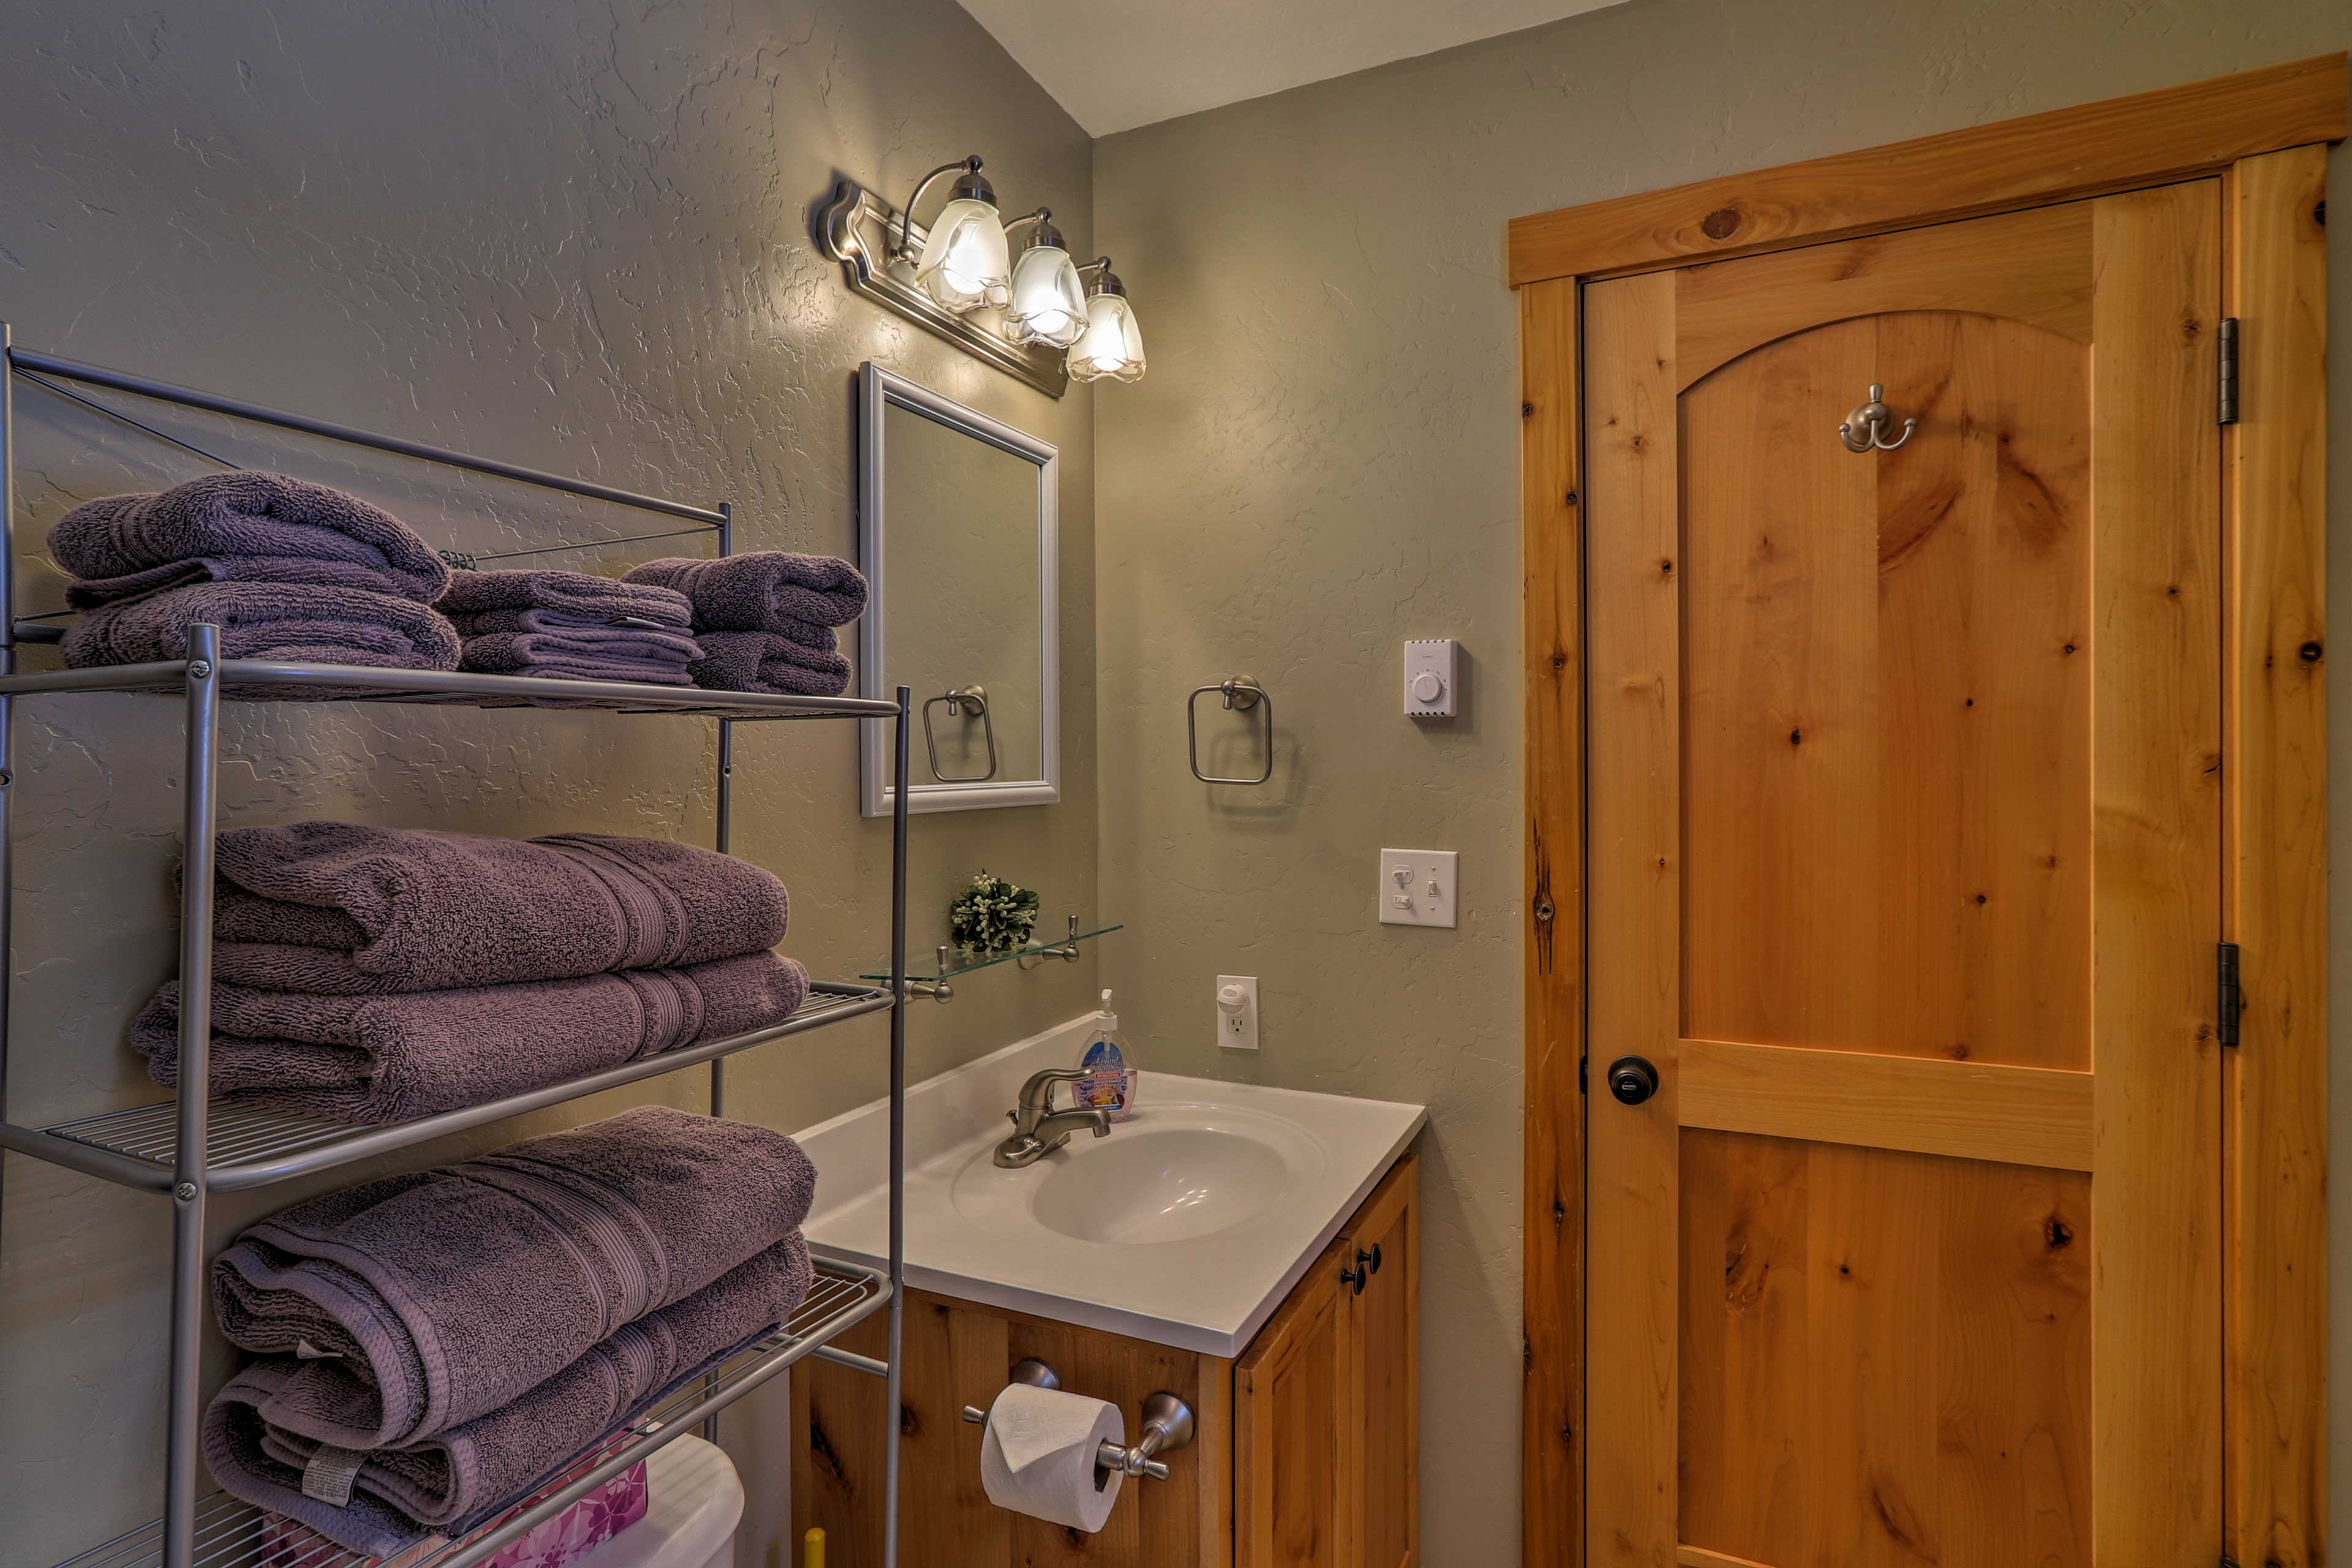 You'll have plenty of space to freshen up in the mornings.